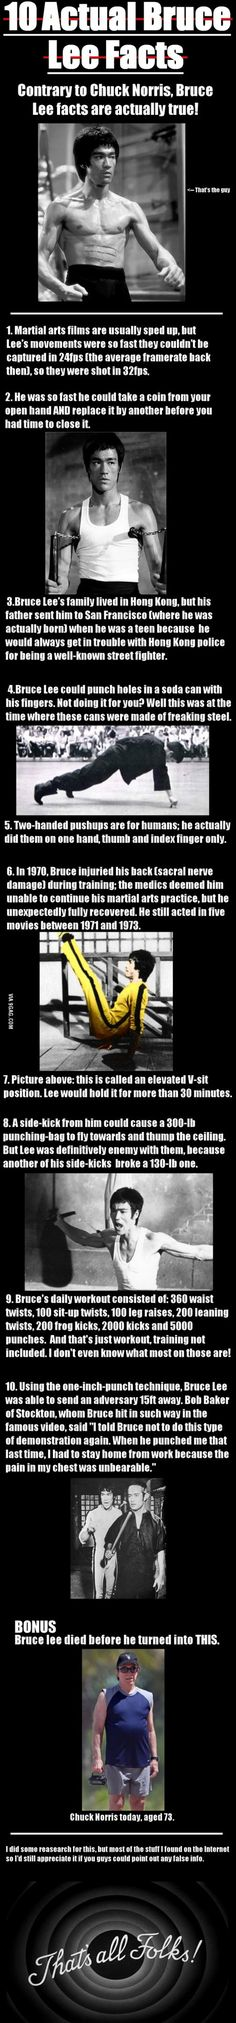 Some interesting facts about Bruce Lee - Imgur